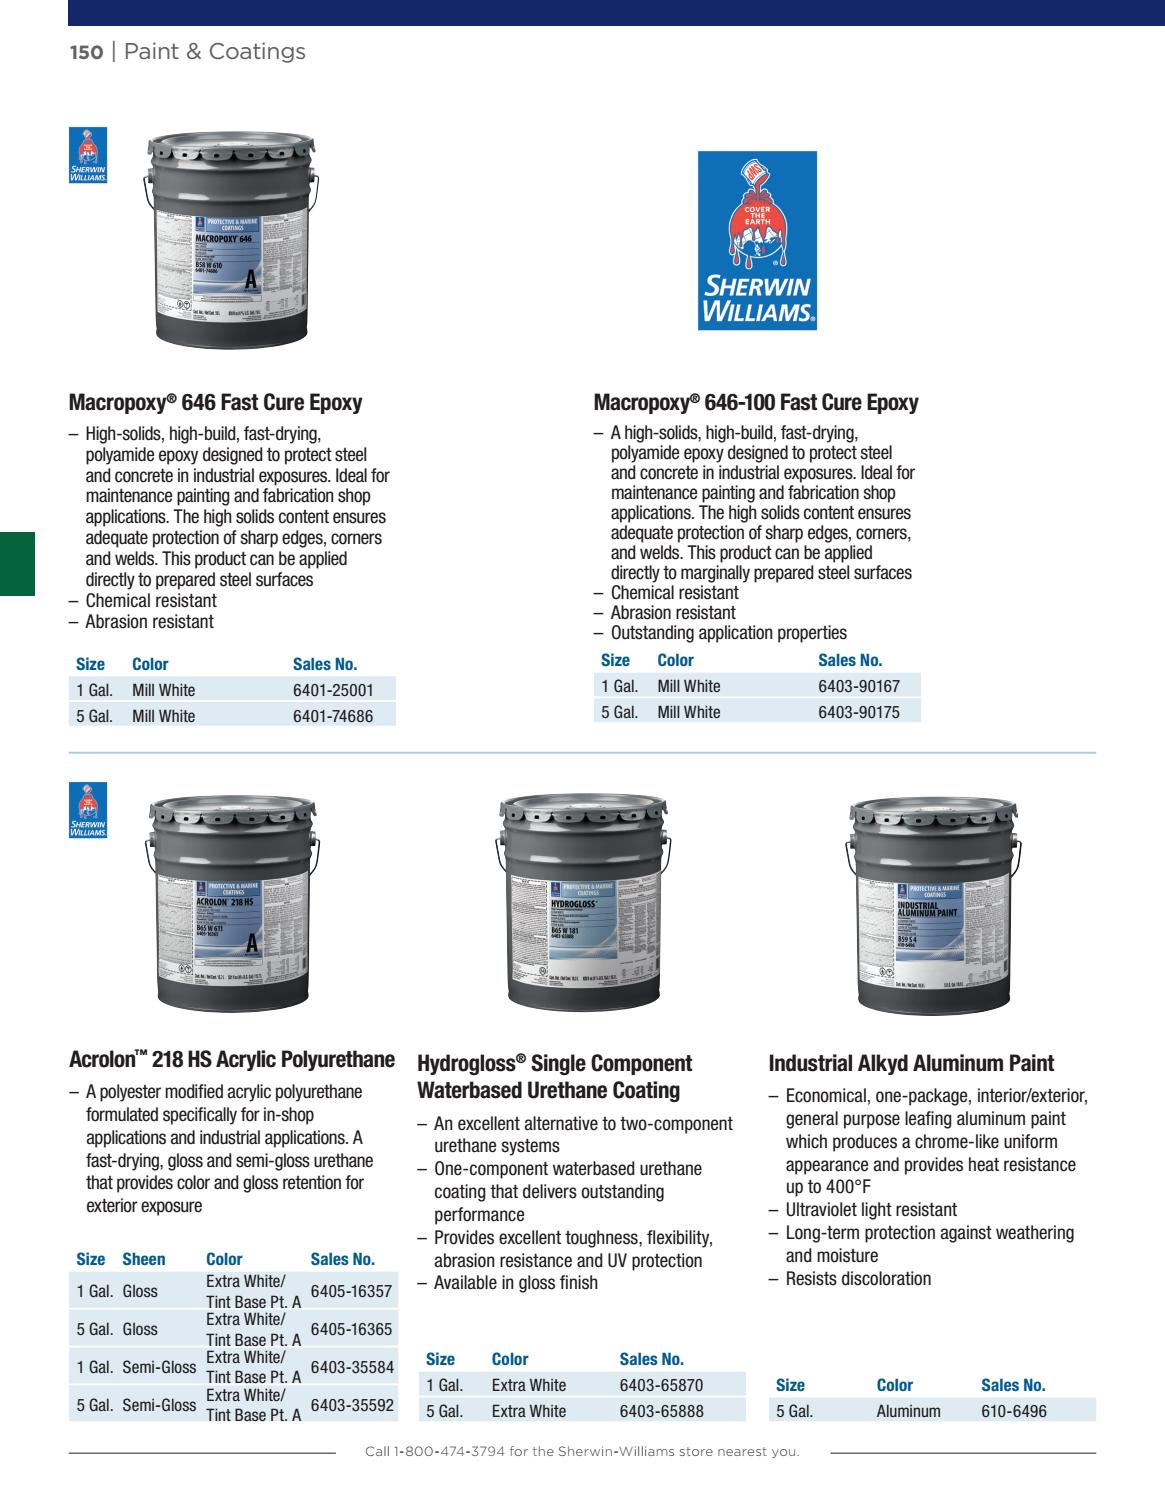 Sherwin-Williams Contractor and Facility Maintenance Catalog